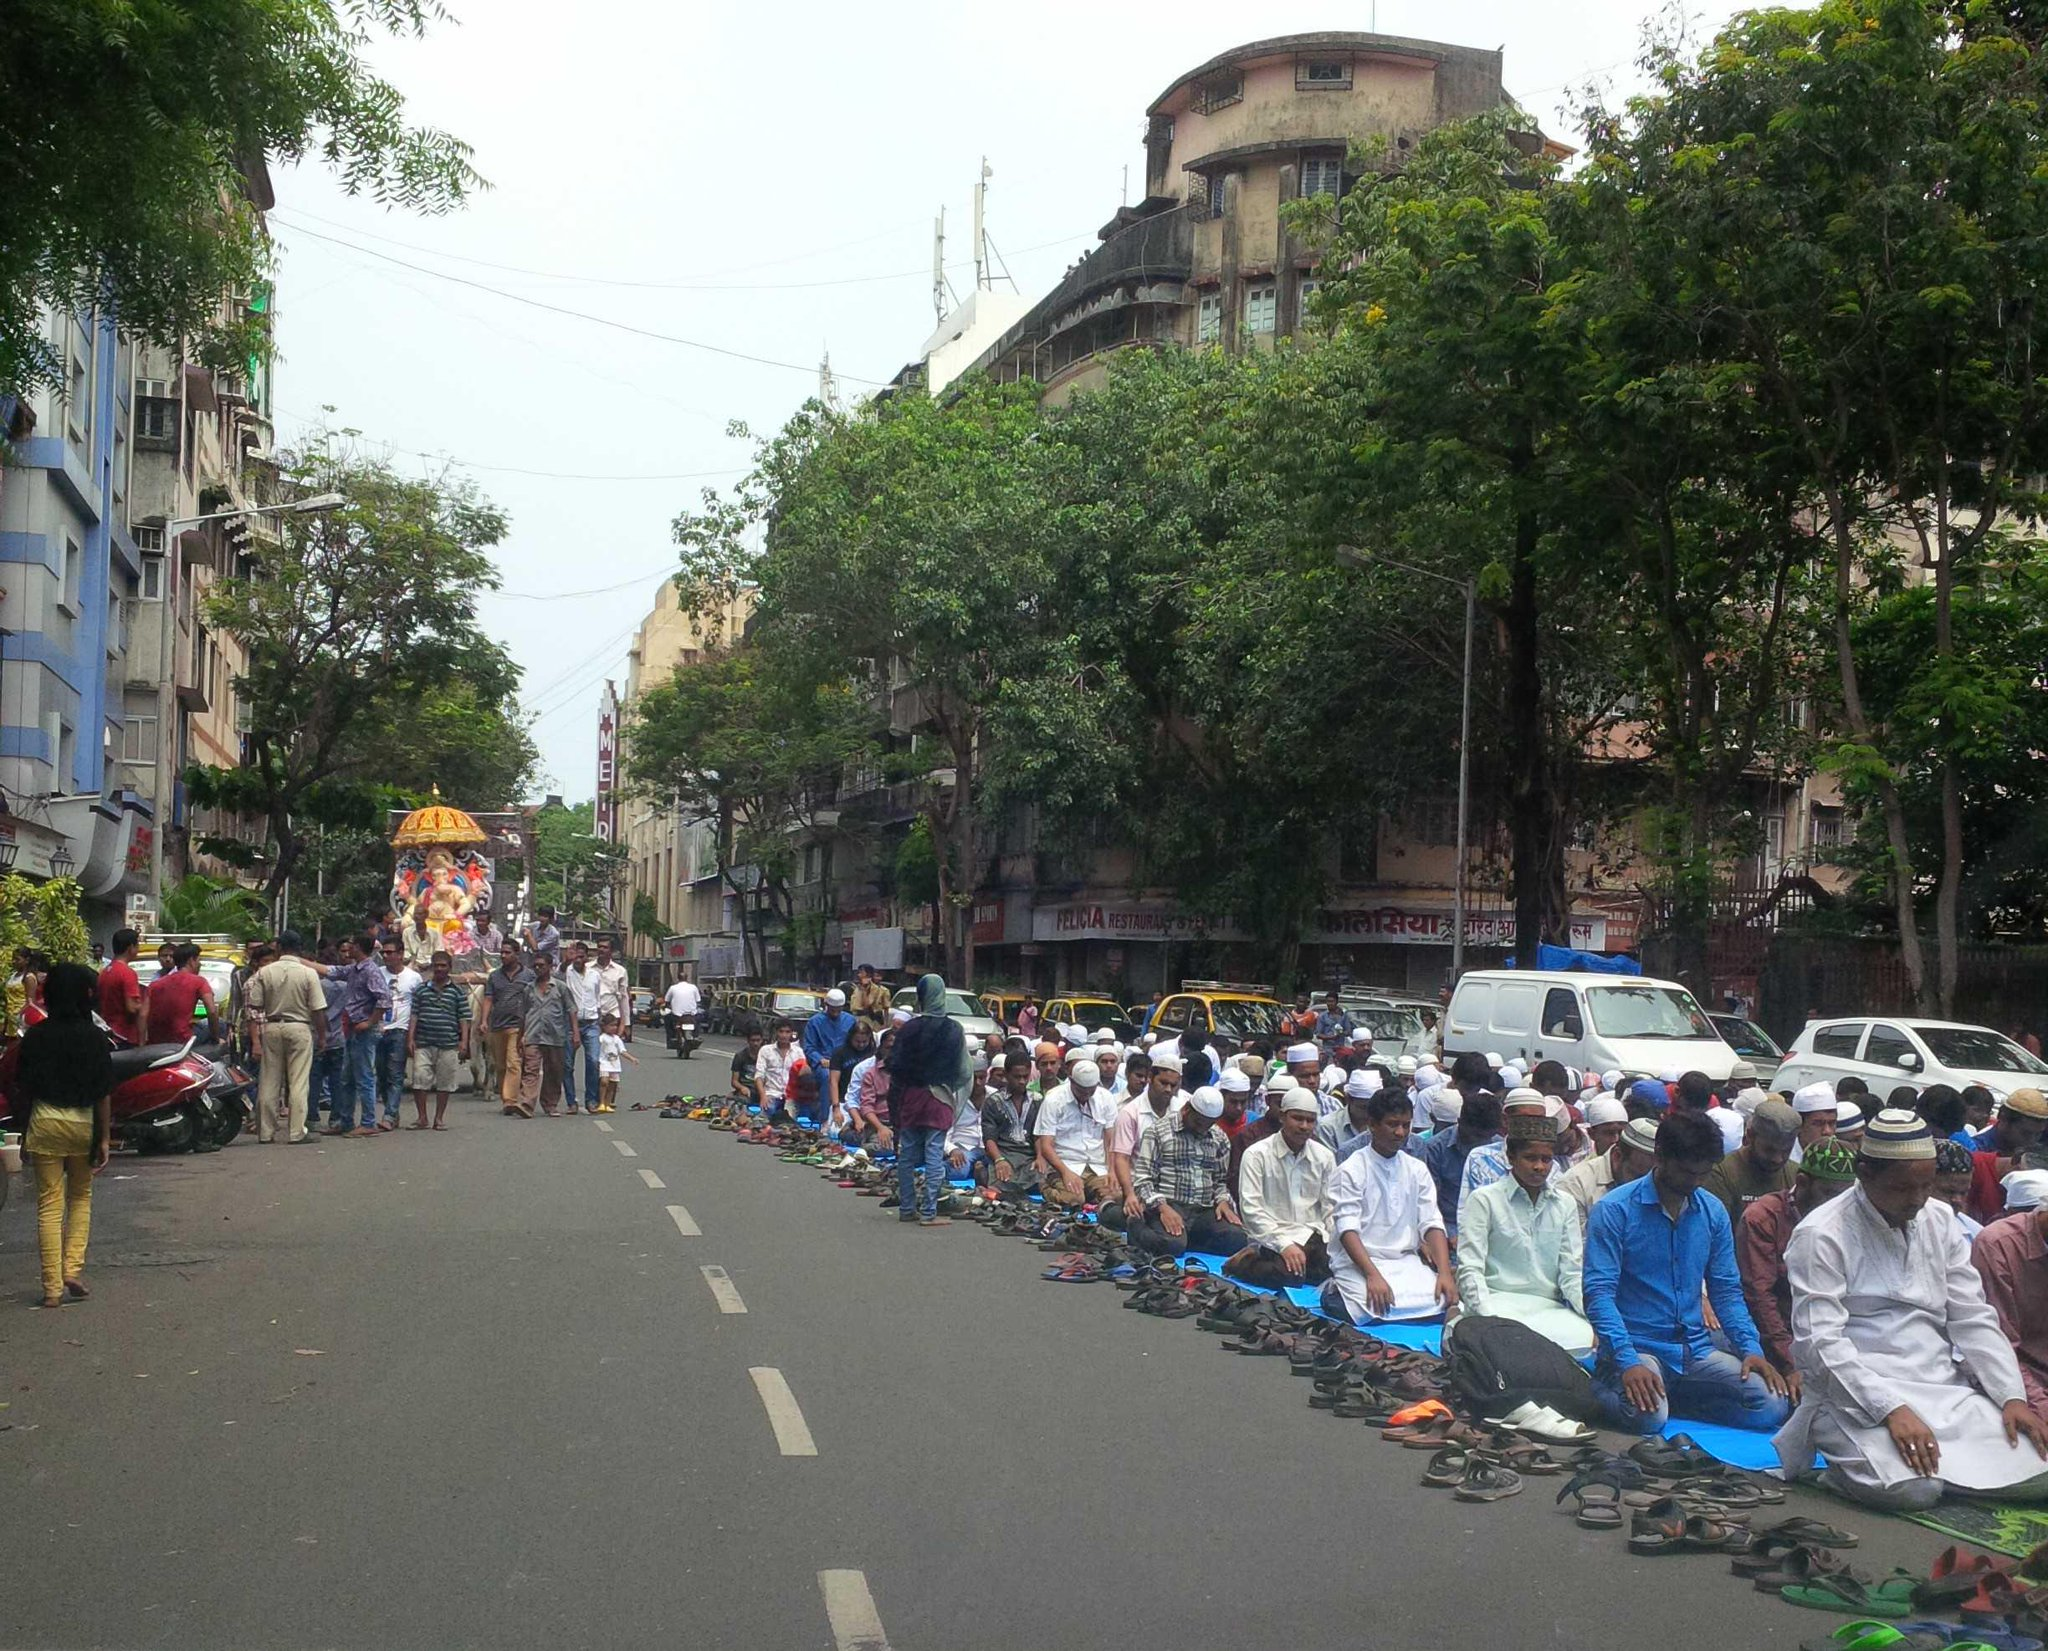 Hindus hold Ganpati parade on left, Muslims perform namaz on right